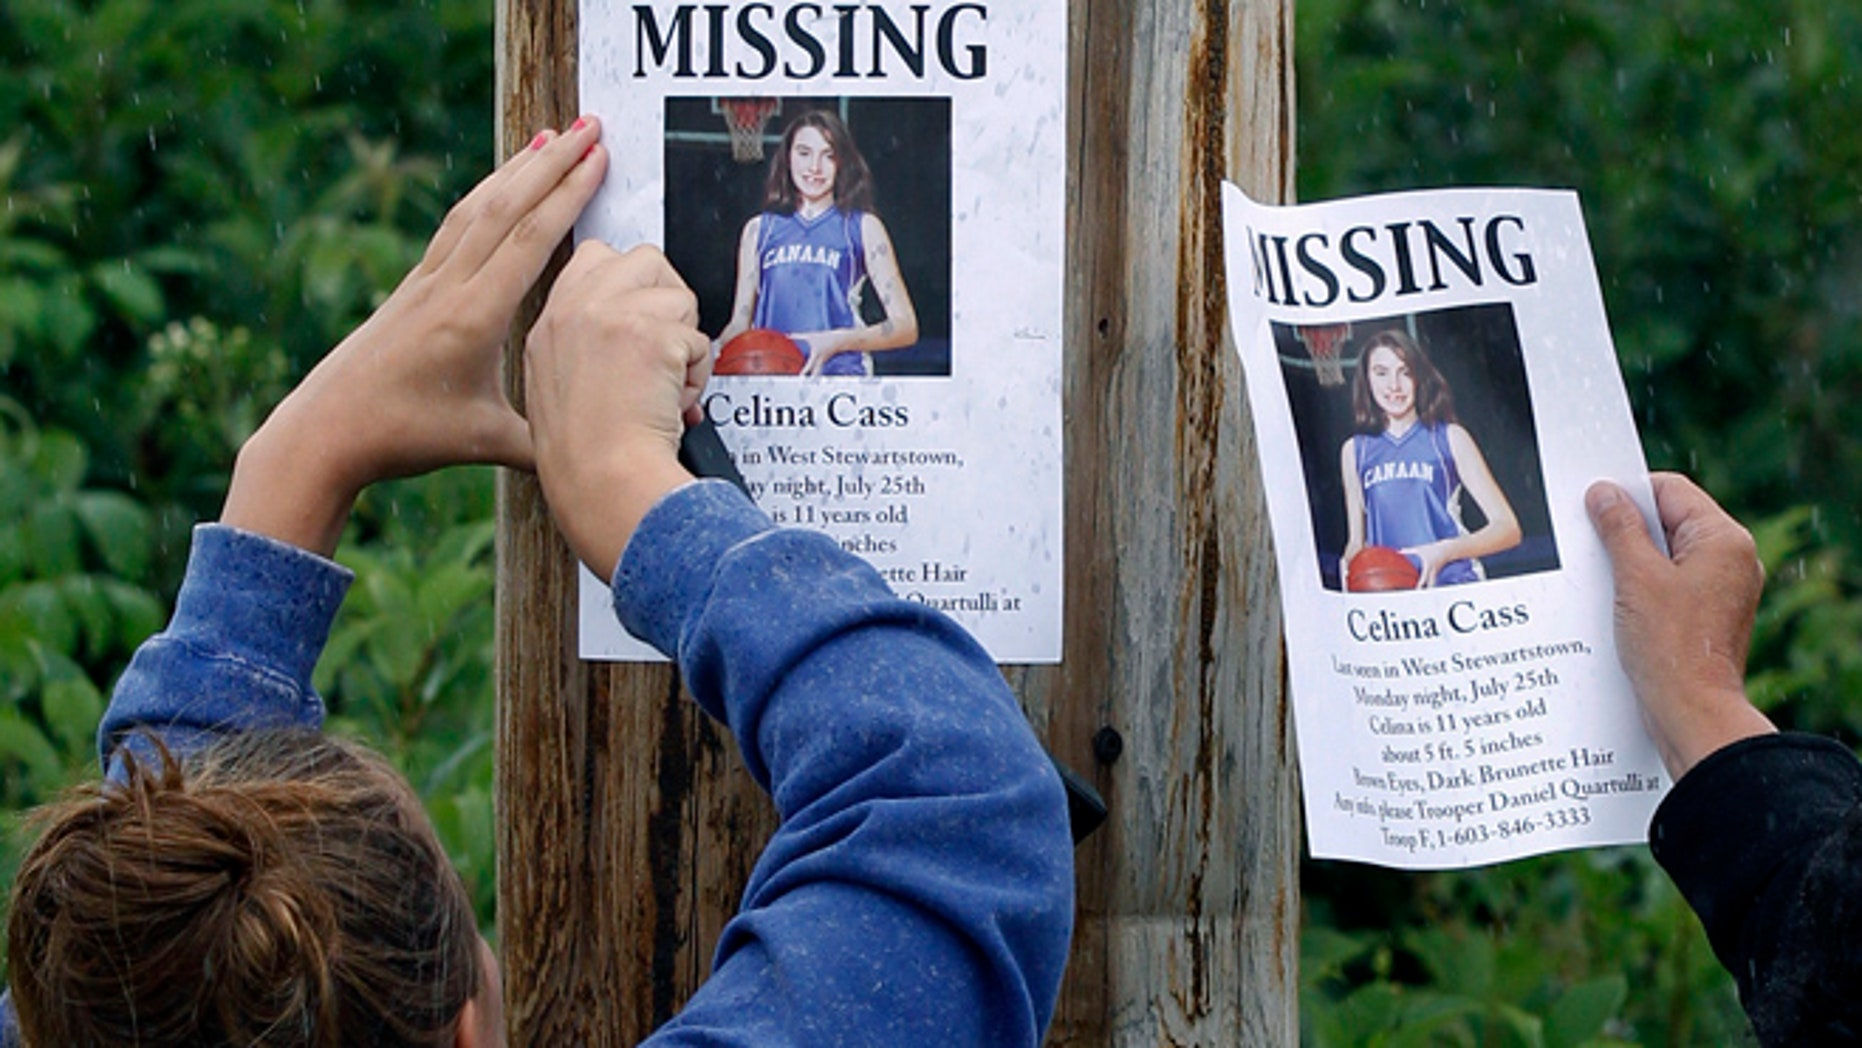 July 28, 2011: file photo, Kaylin Pettit, of Stewartstown, N.H., left, and Lori McKearney, of Lancaster, N.H. tack missing posters for Celina Cass to a utility pole in Colebrook, N.H.